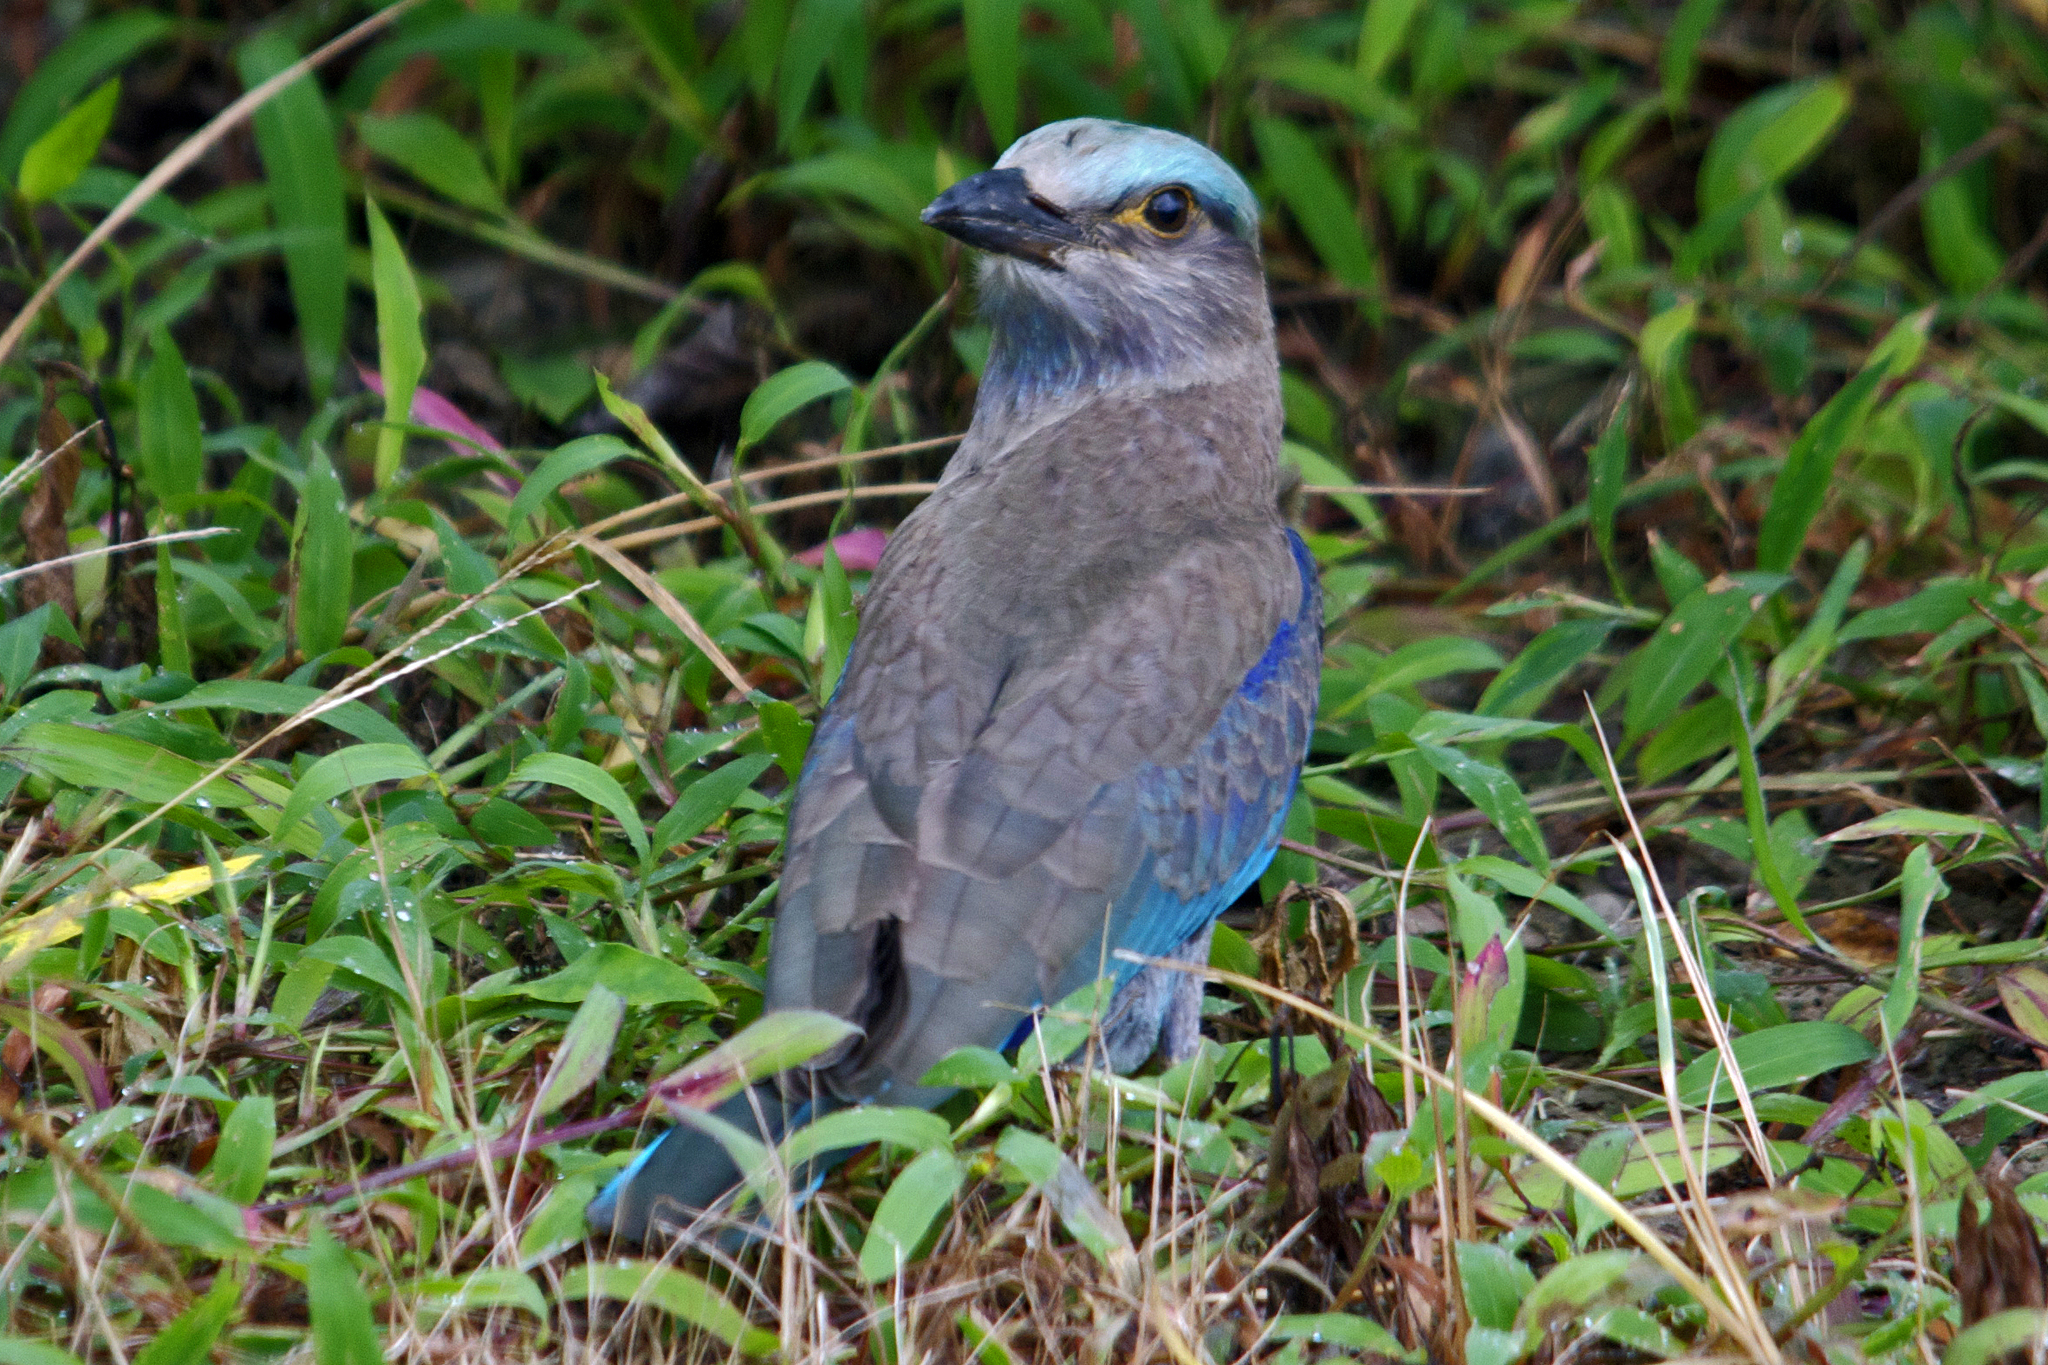 Image of Indian Roller